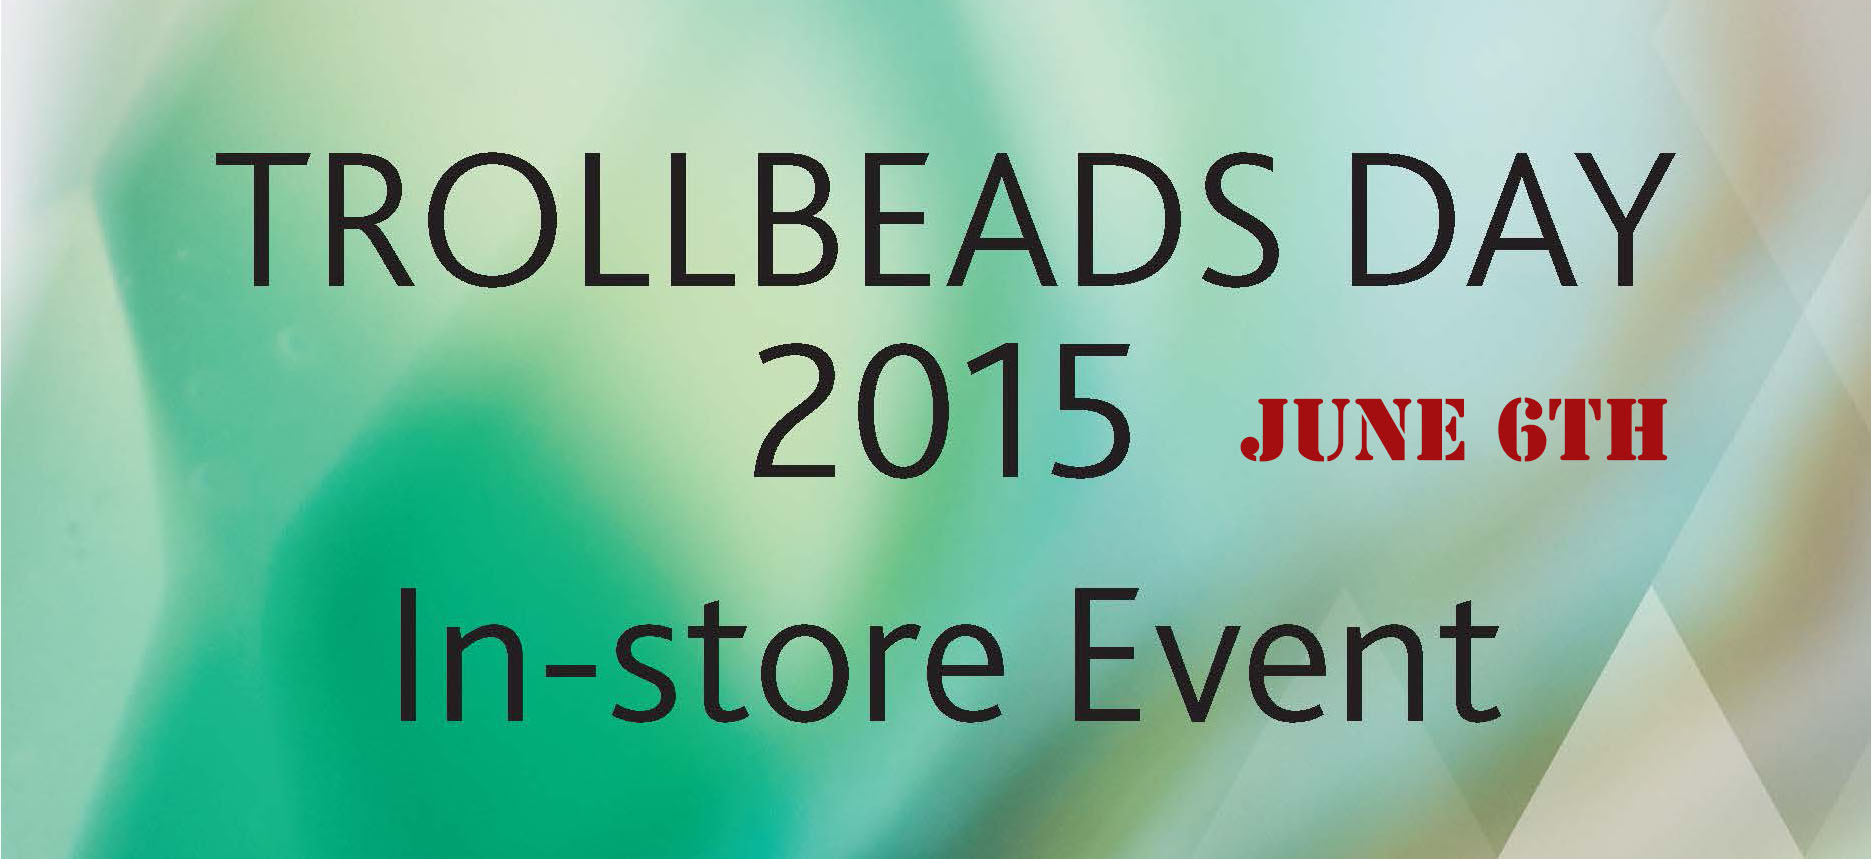 Trollbeads Day 2015 at Trollbeads Gallery